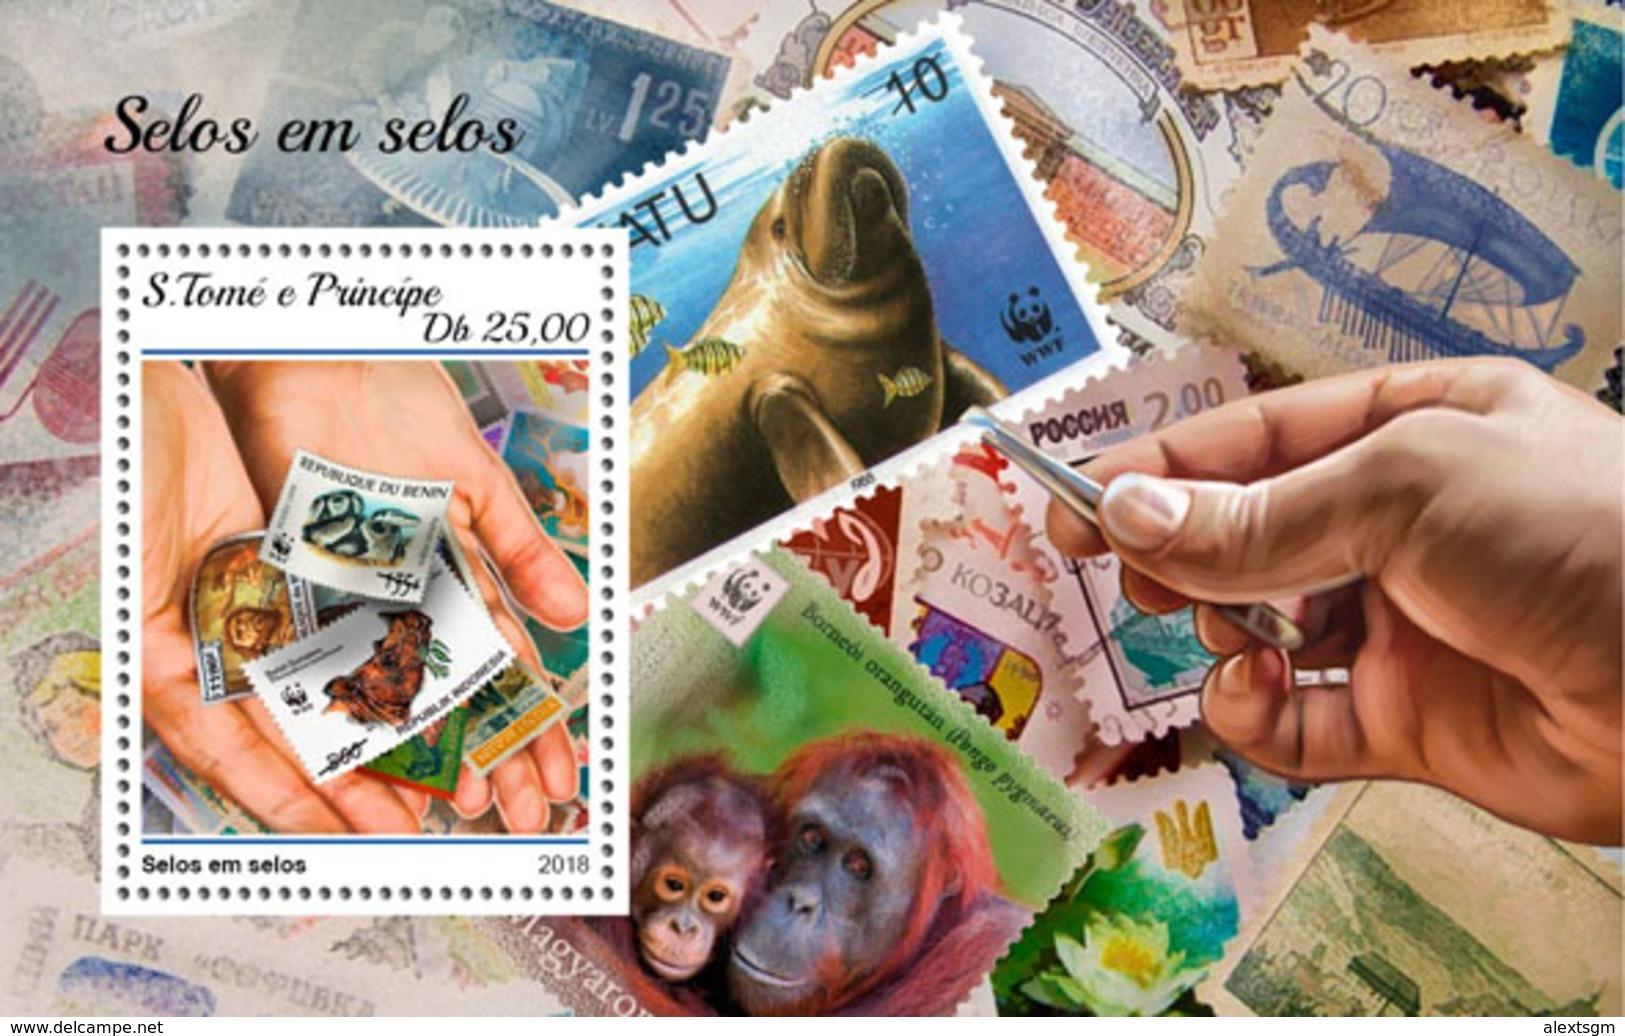 S. TOME & PRINCIPE 2018 - Rhinoceros On Stamps (Small) S/S. Official Issue - Neushoorn